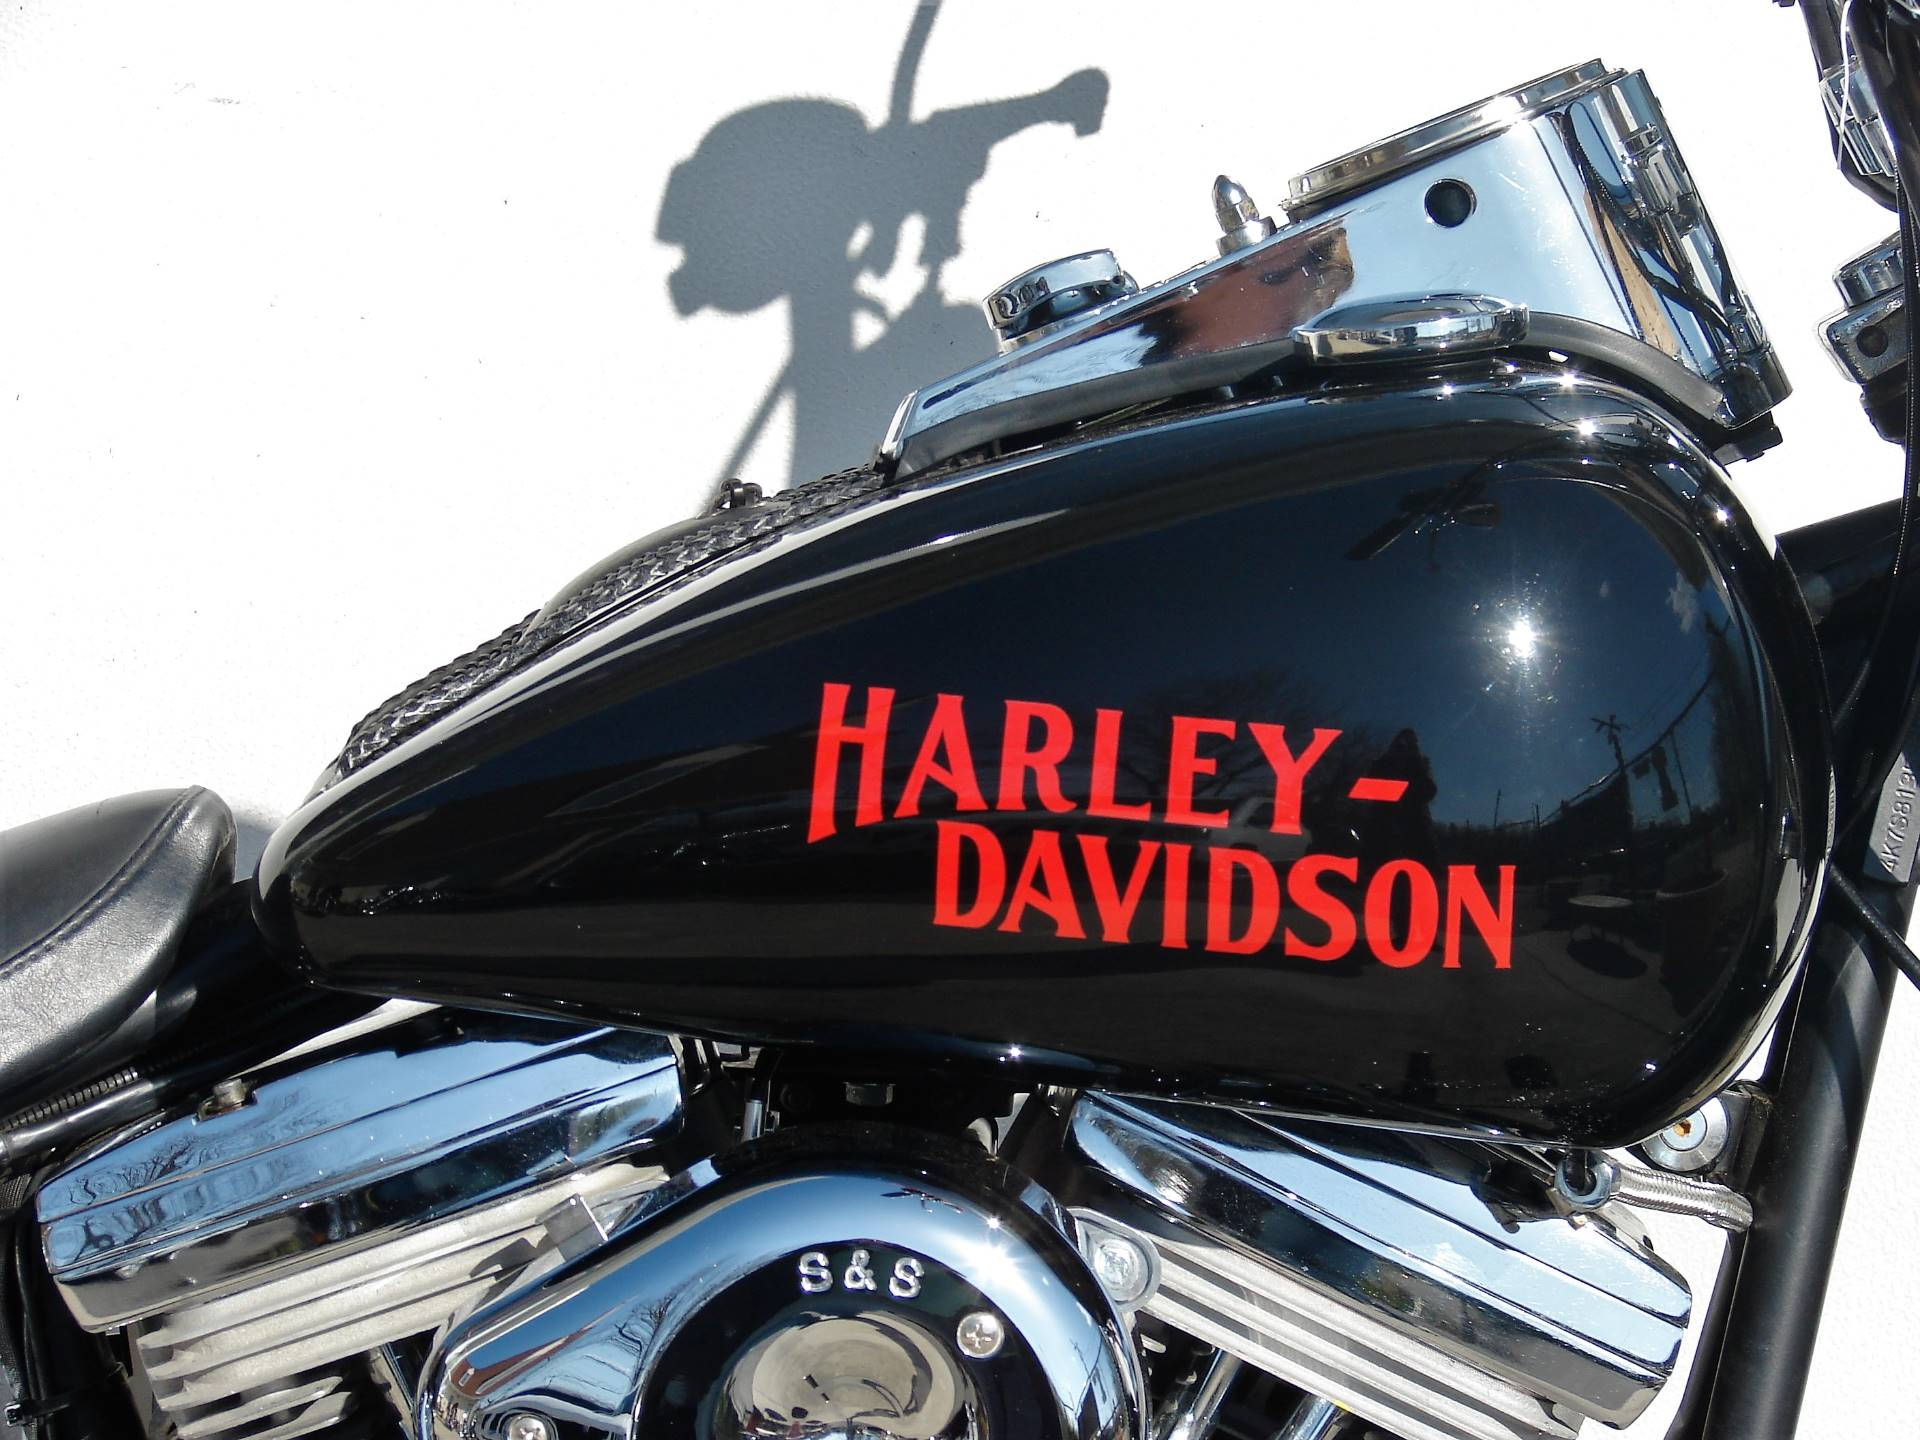 1999 Harley-Davidson Heritage  (Reconstruction) in Williamstown, New Jersey